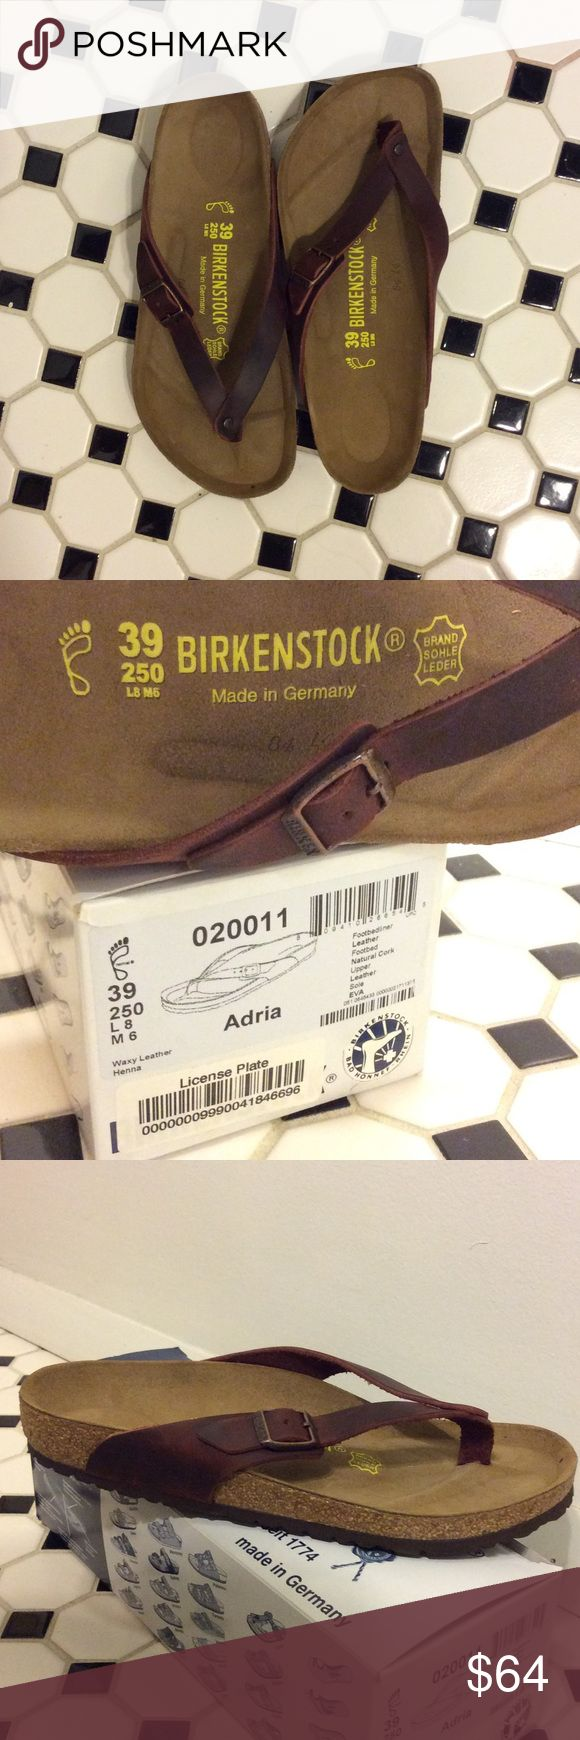 Birkenstock Adria Flip Flop Leather Sandal Birkenstock Adria Flip Flop Leather Sandal. Never worn, with box. Brown leather strap and cork footbed. US 8 (Euro 39) Birkenstock Shoes Sandals